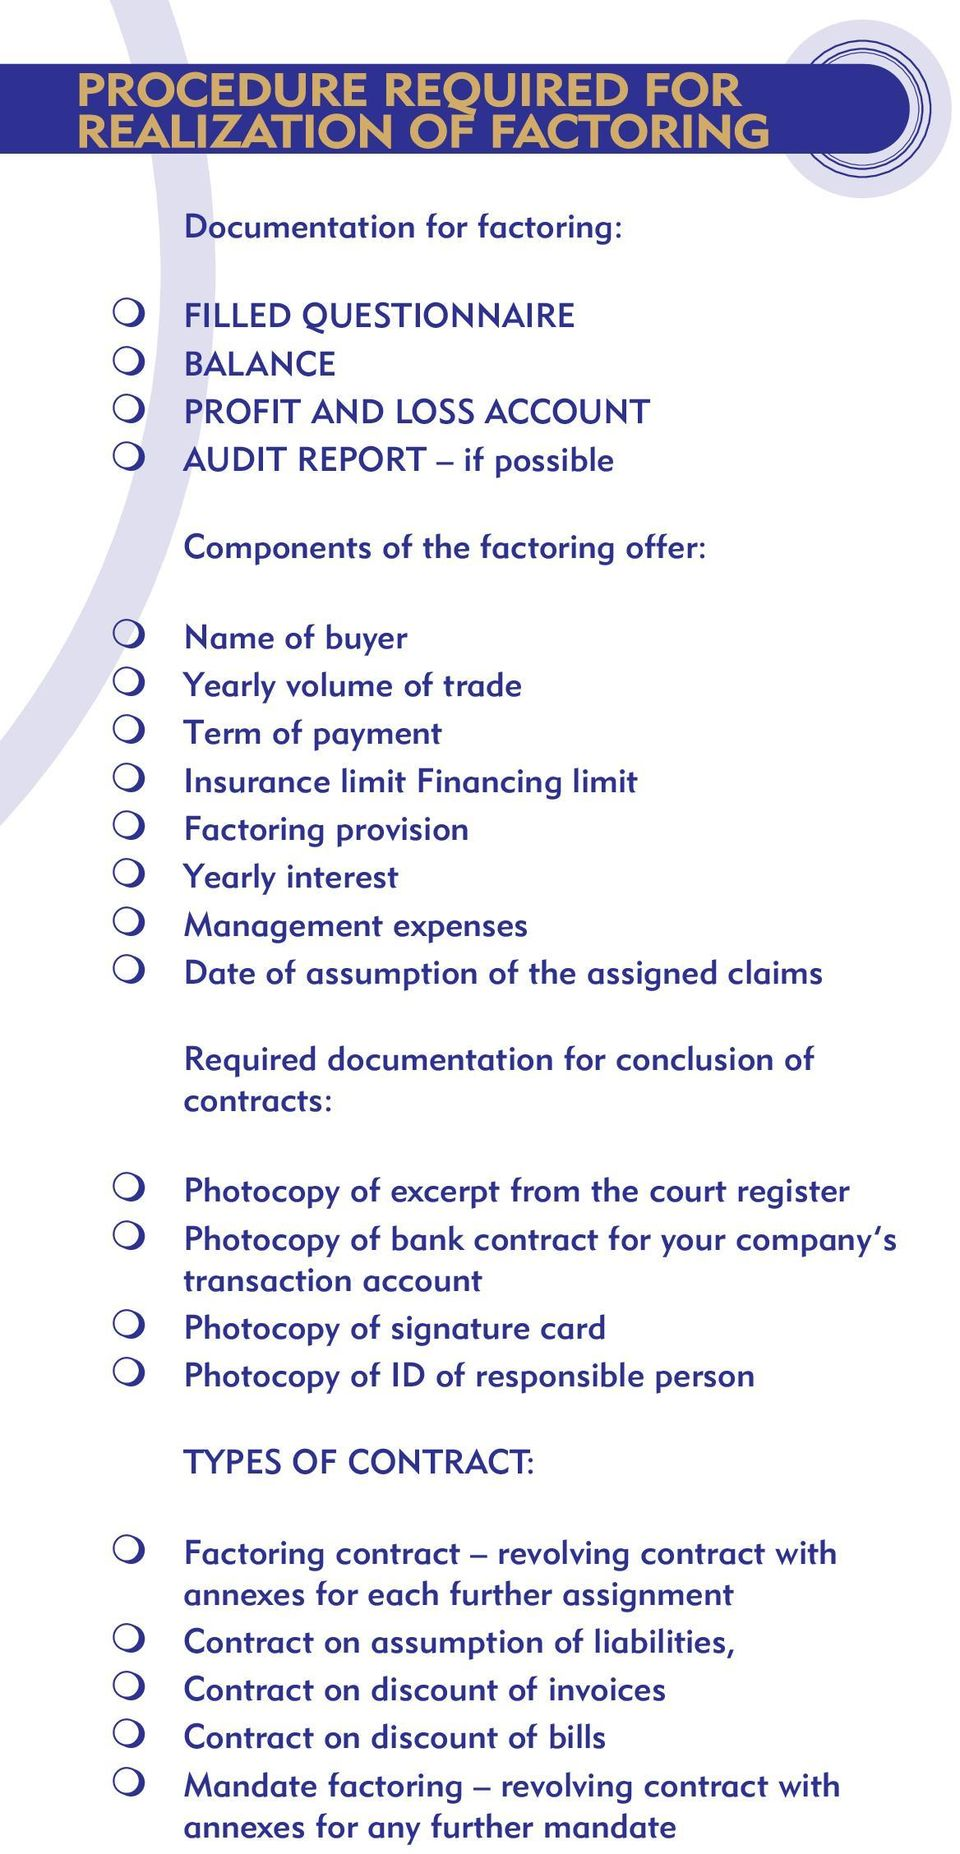 mphotocopy of excerpt from the court register mphotocopy of bank contract for your company s transaction account mphotocopy of signature card mphotocopy of ID of responsible person TYPES OF CONTRACT: